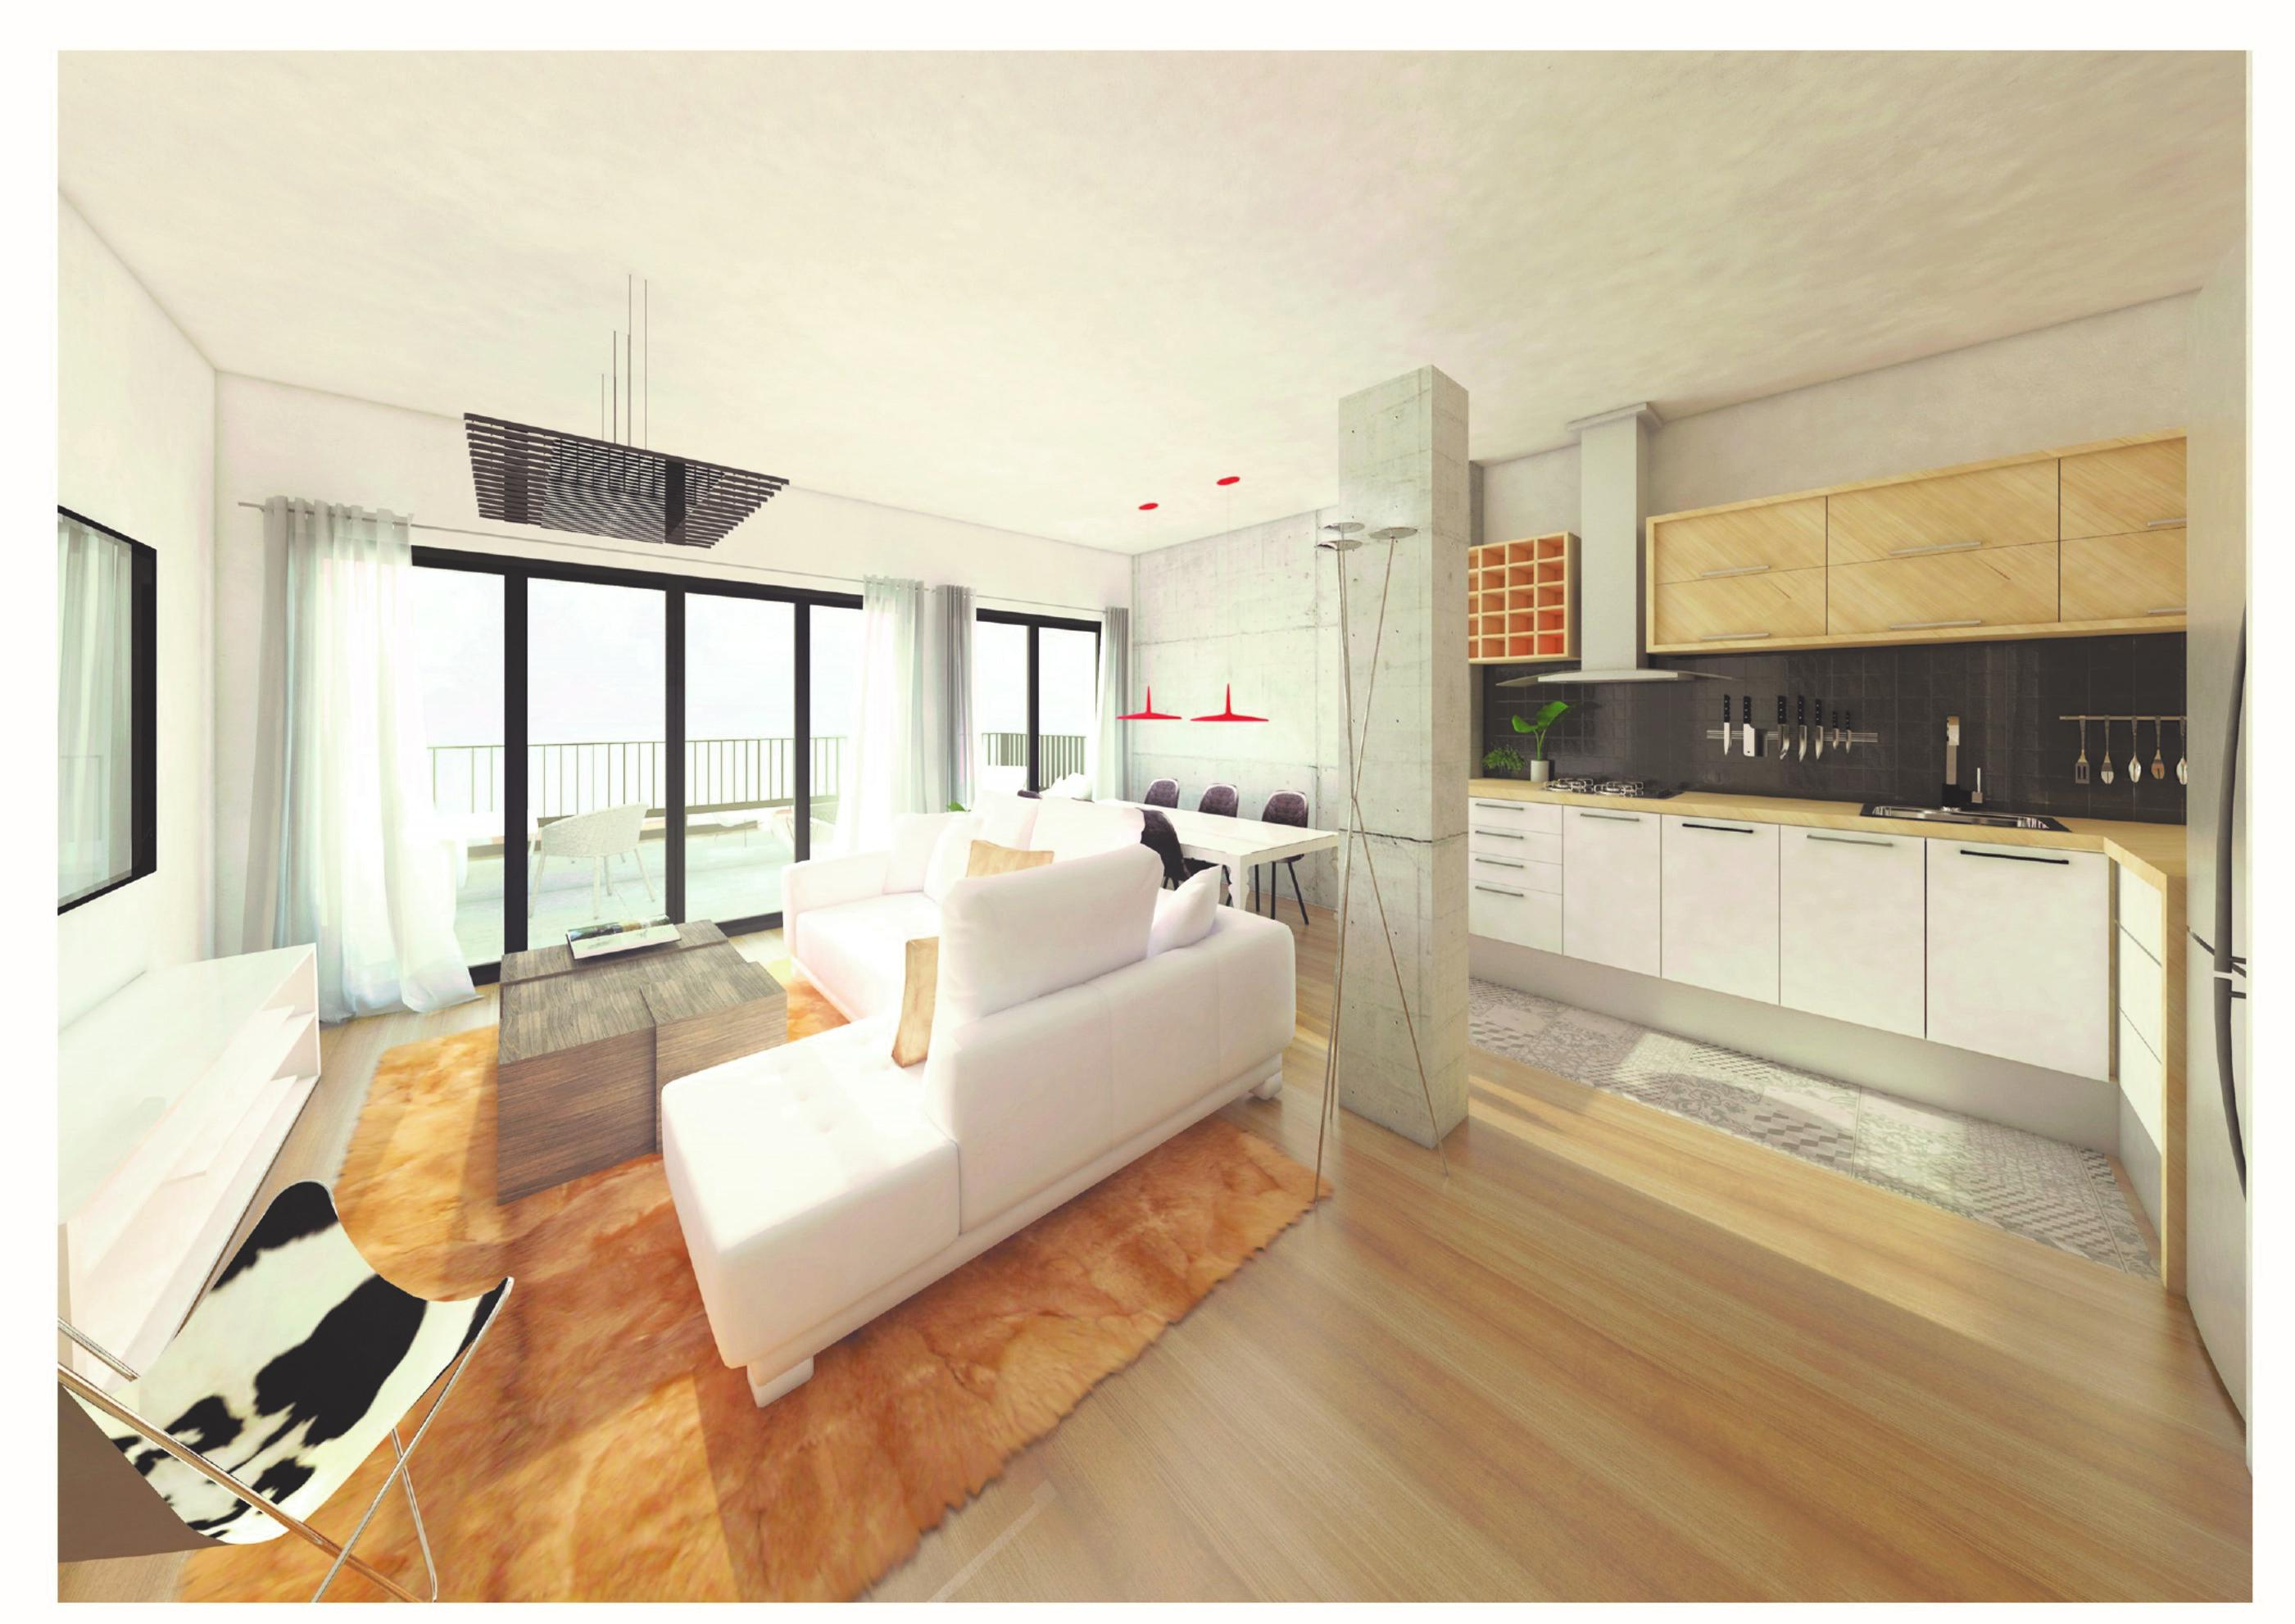 220653 Penthouse for sale in Sarrià-Sant Gervasi, Sant Gervasi-Galvany 21